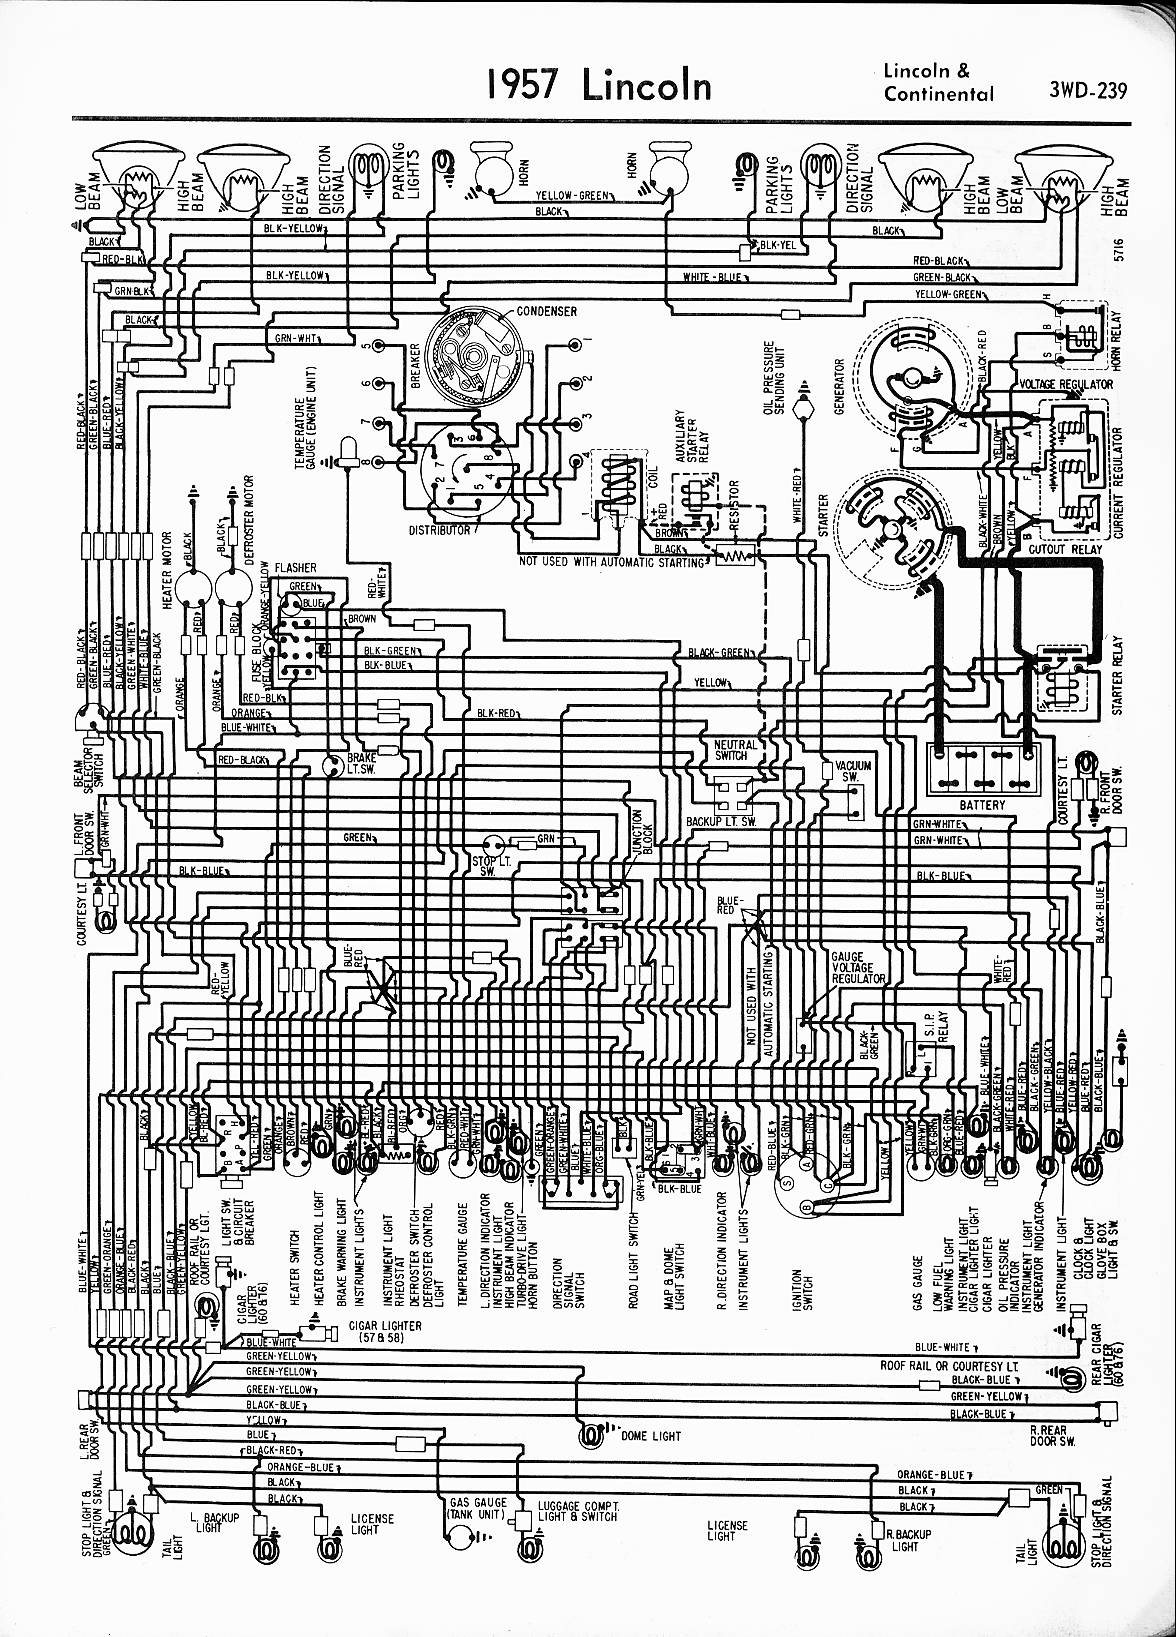 MWireLin_Lin57_z3wd 239z_001 lincoln wiring diagrams 1949 lincoln wiring diagram \u2022 free wiring Rear Defroster Symbol at soozxer.org